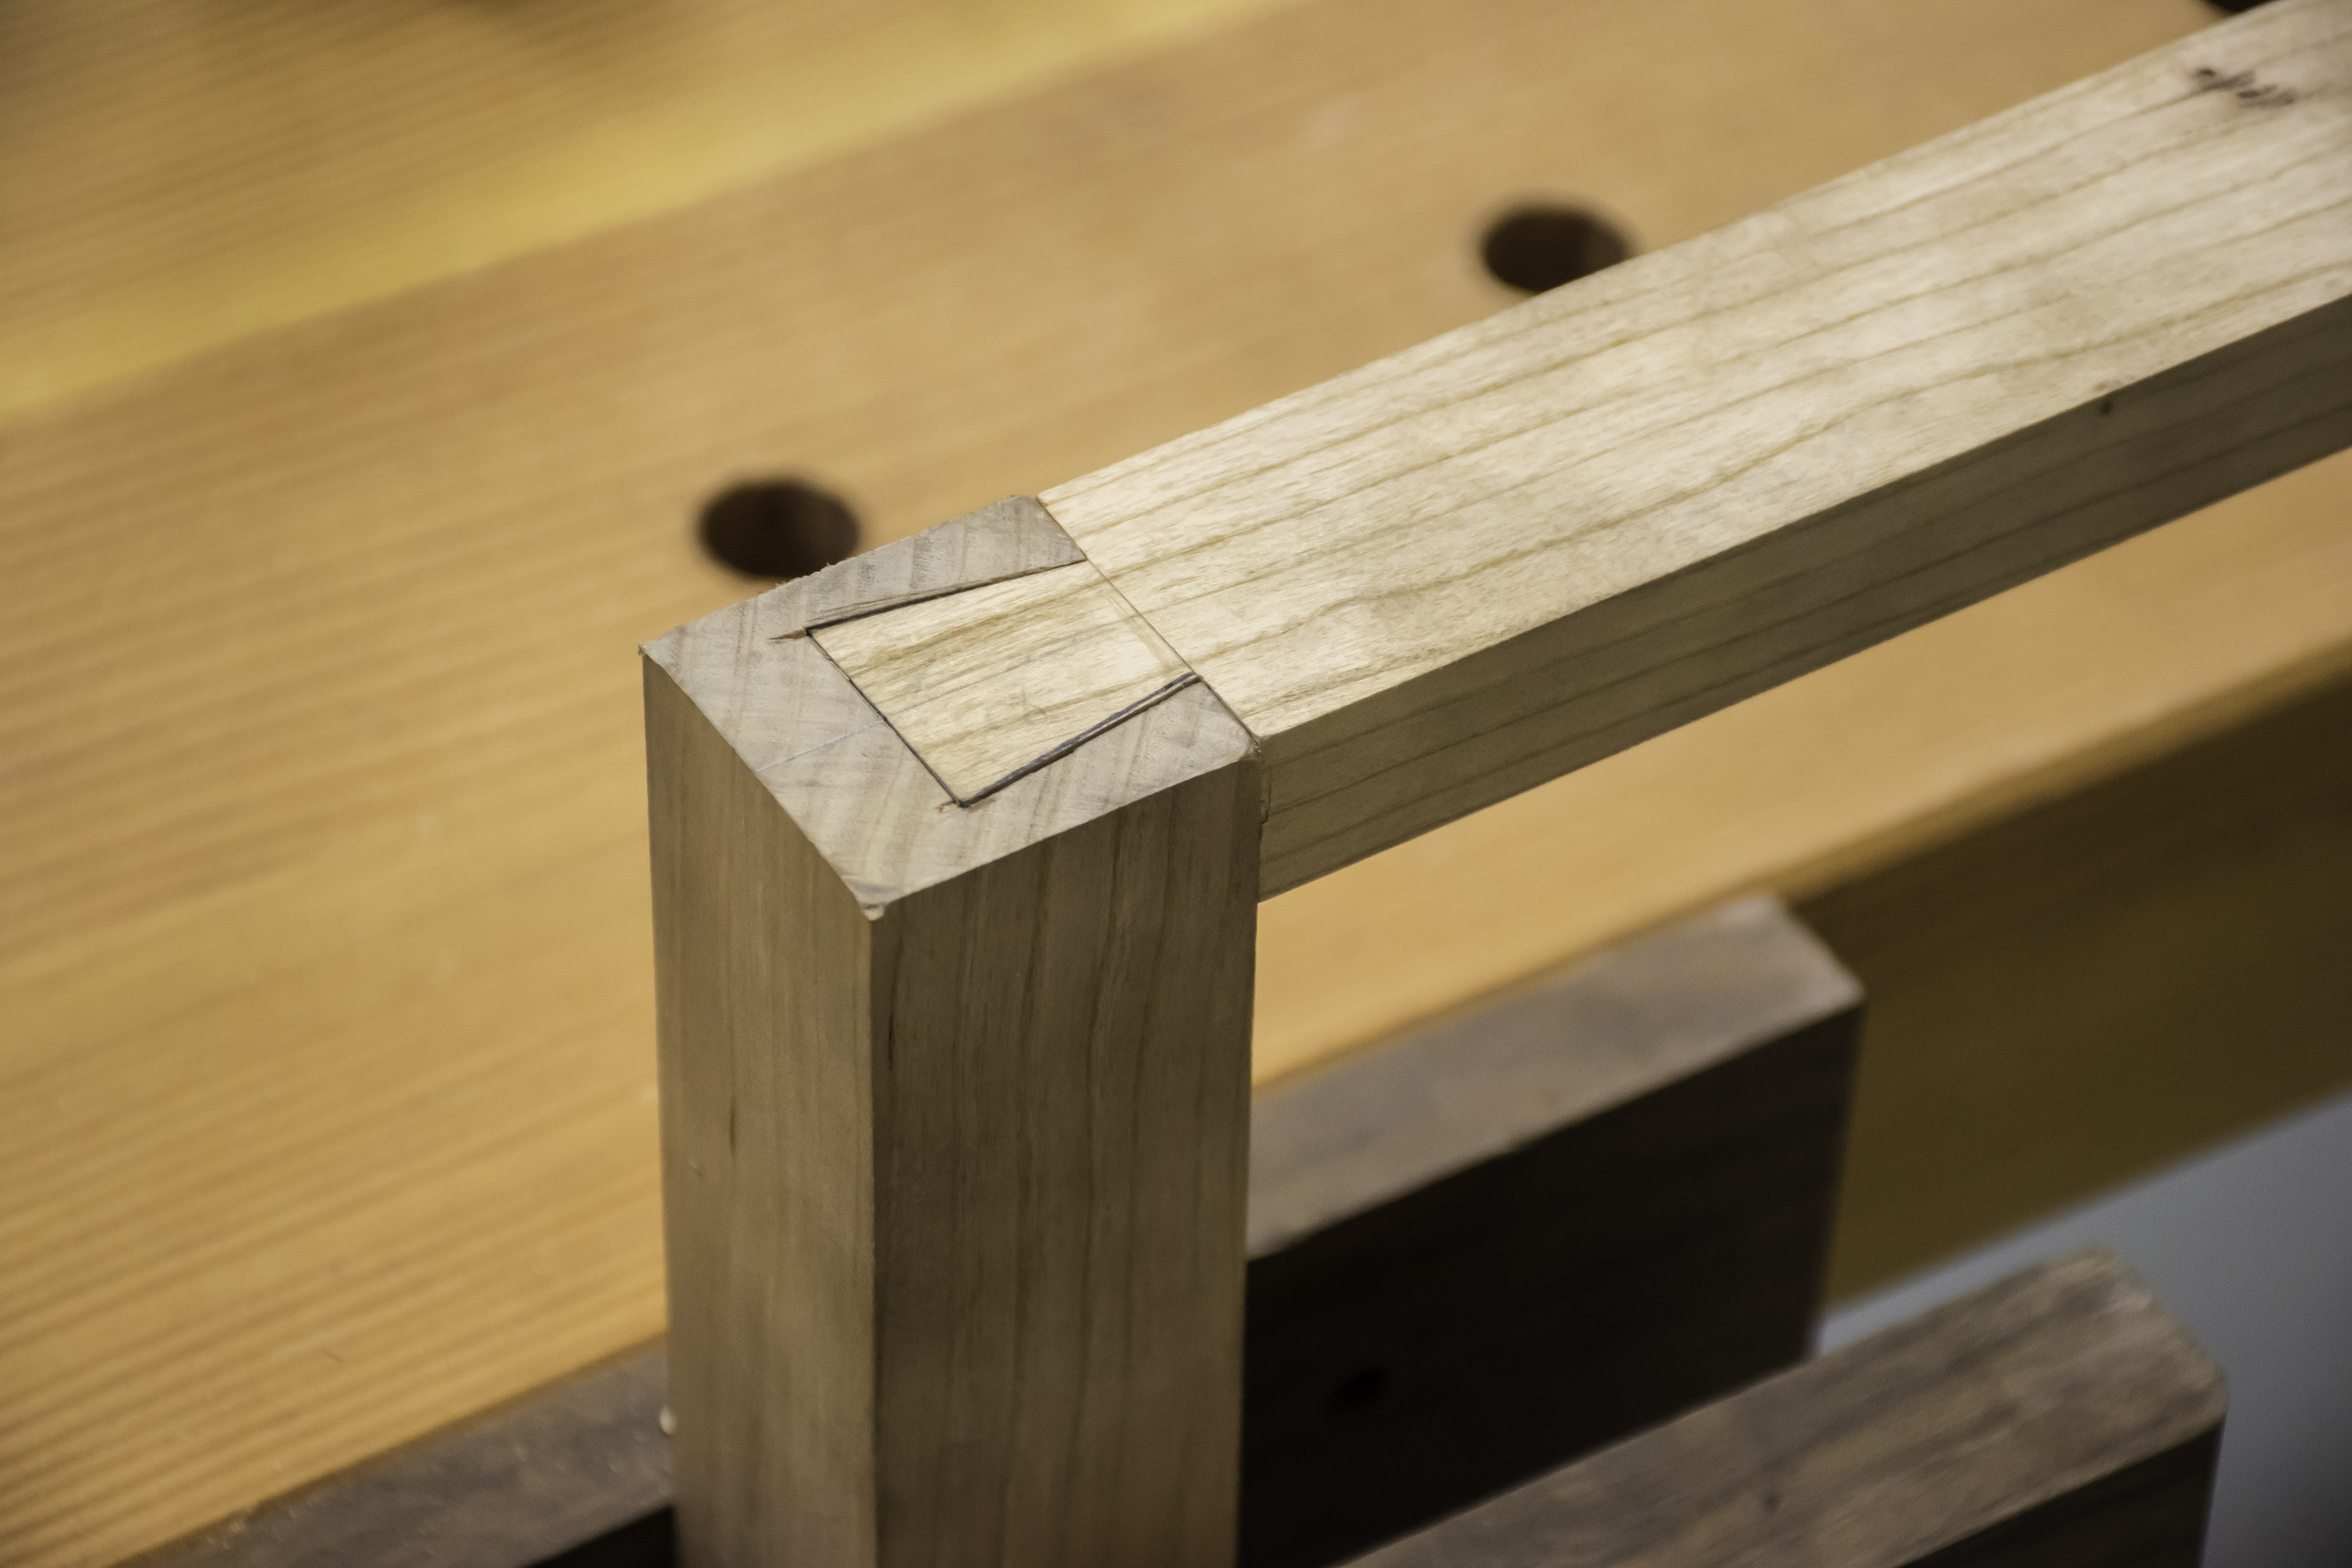 The dovetail is a strong mechanical joint to attach the upper stretchers to the legs.